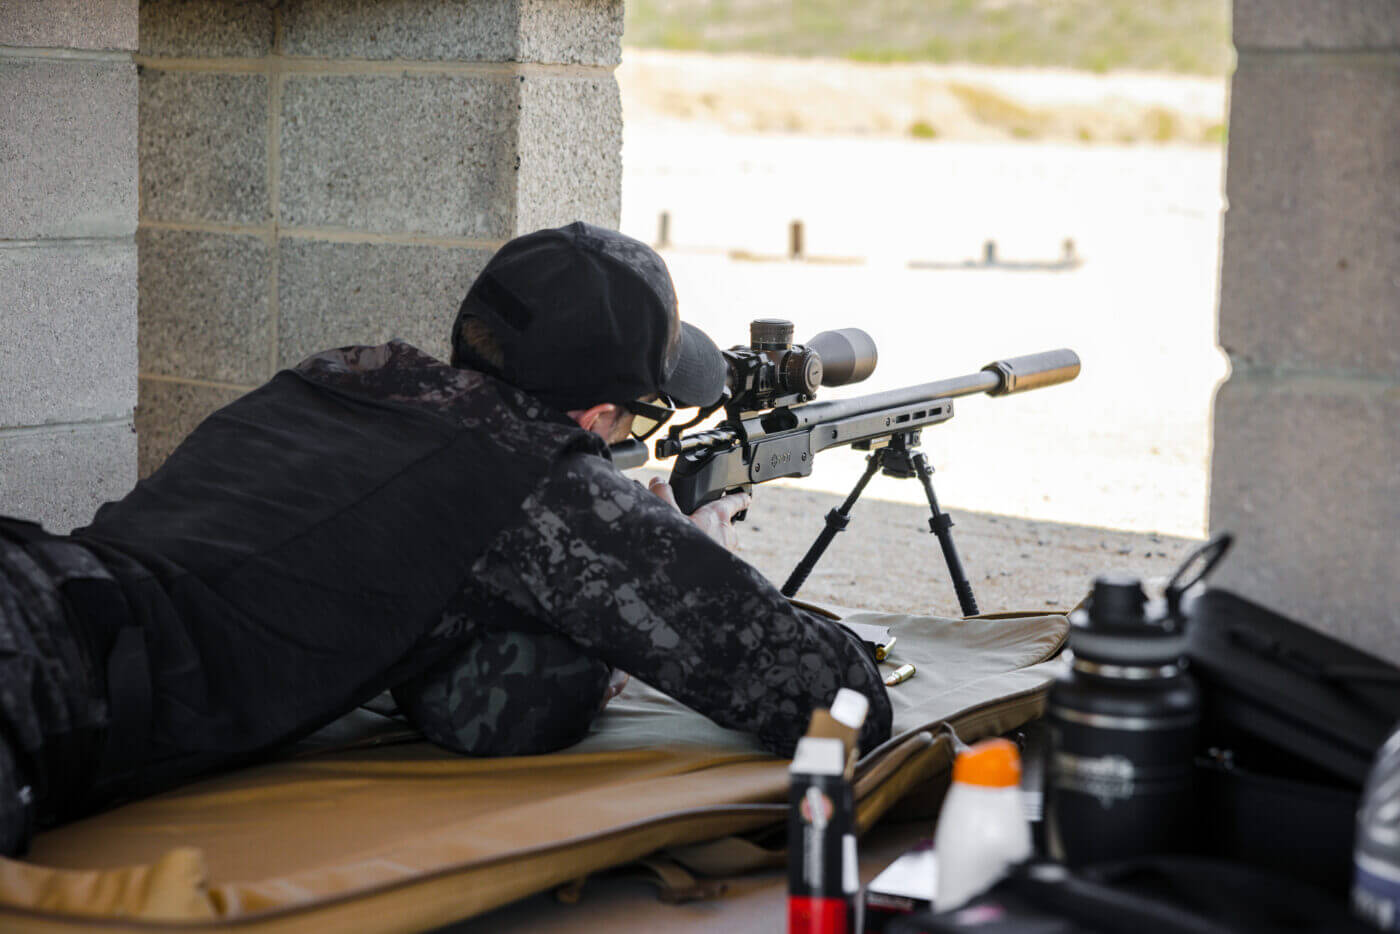 Long range precision shooting from prone position